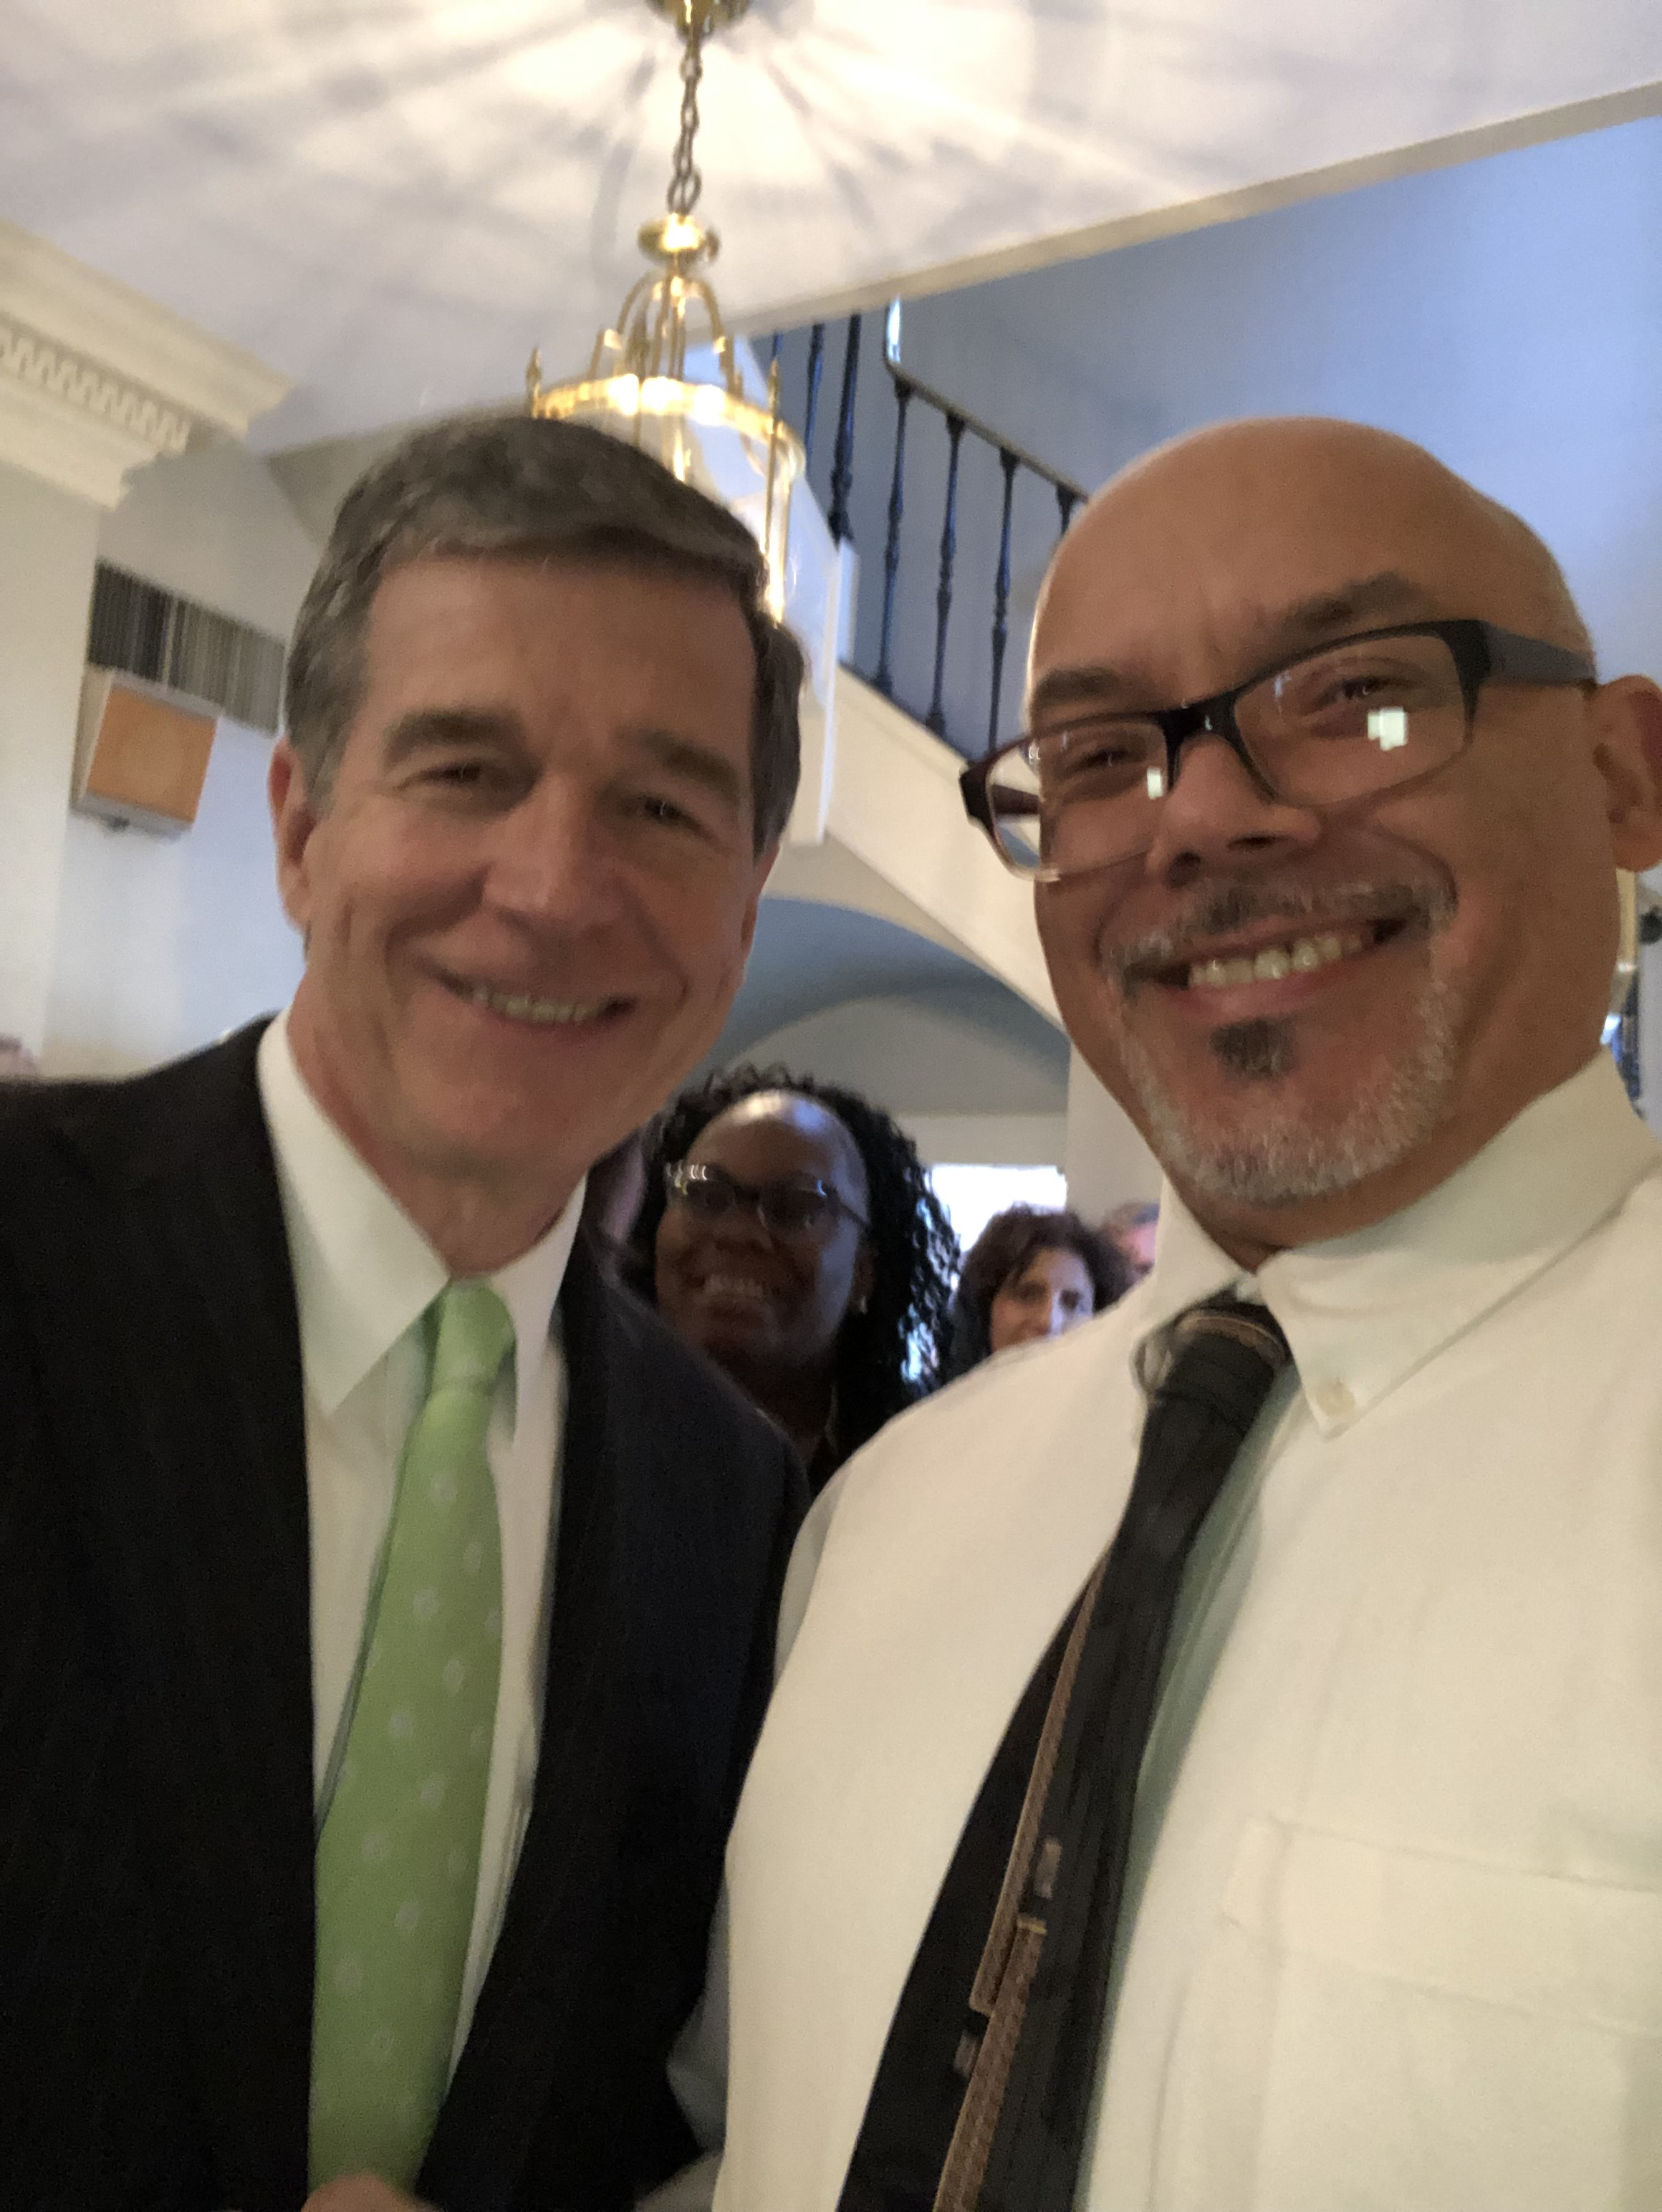 Timothy Johnson, Alumnus, with Governor Roy Cooper after speaking at StepUp Sunday.